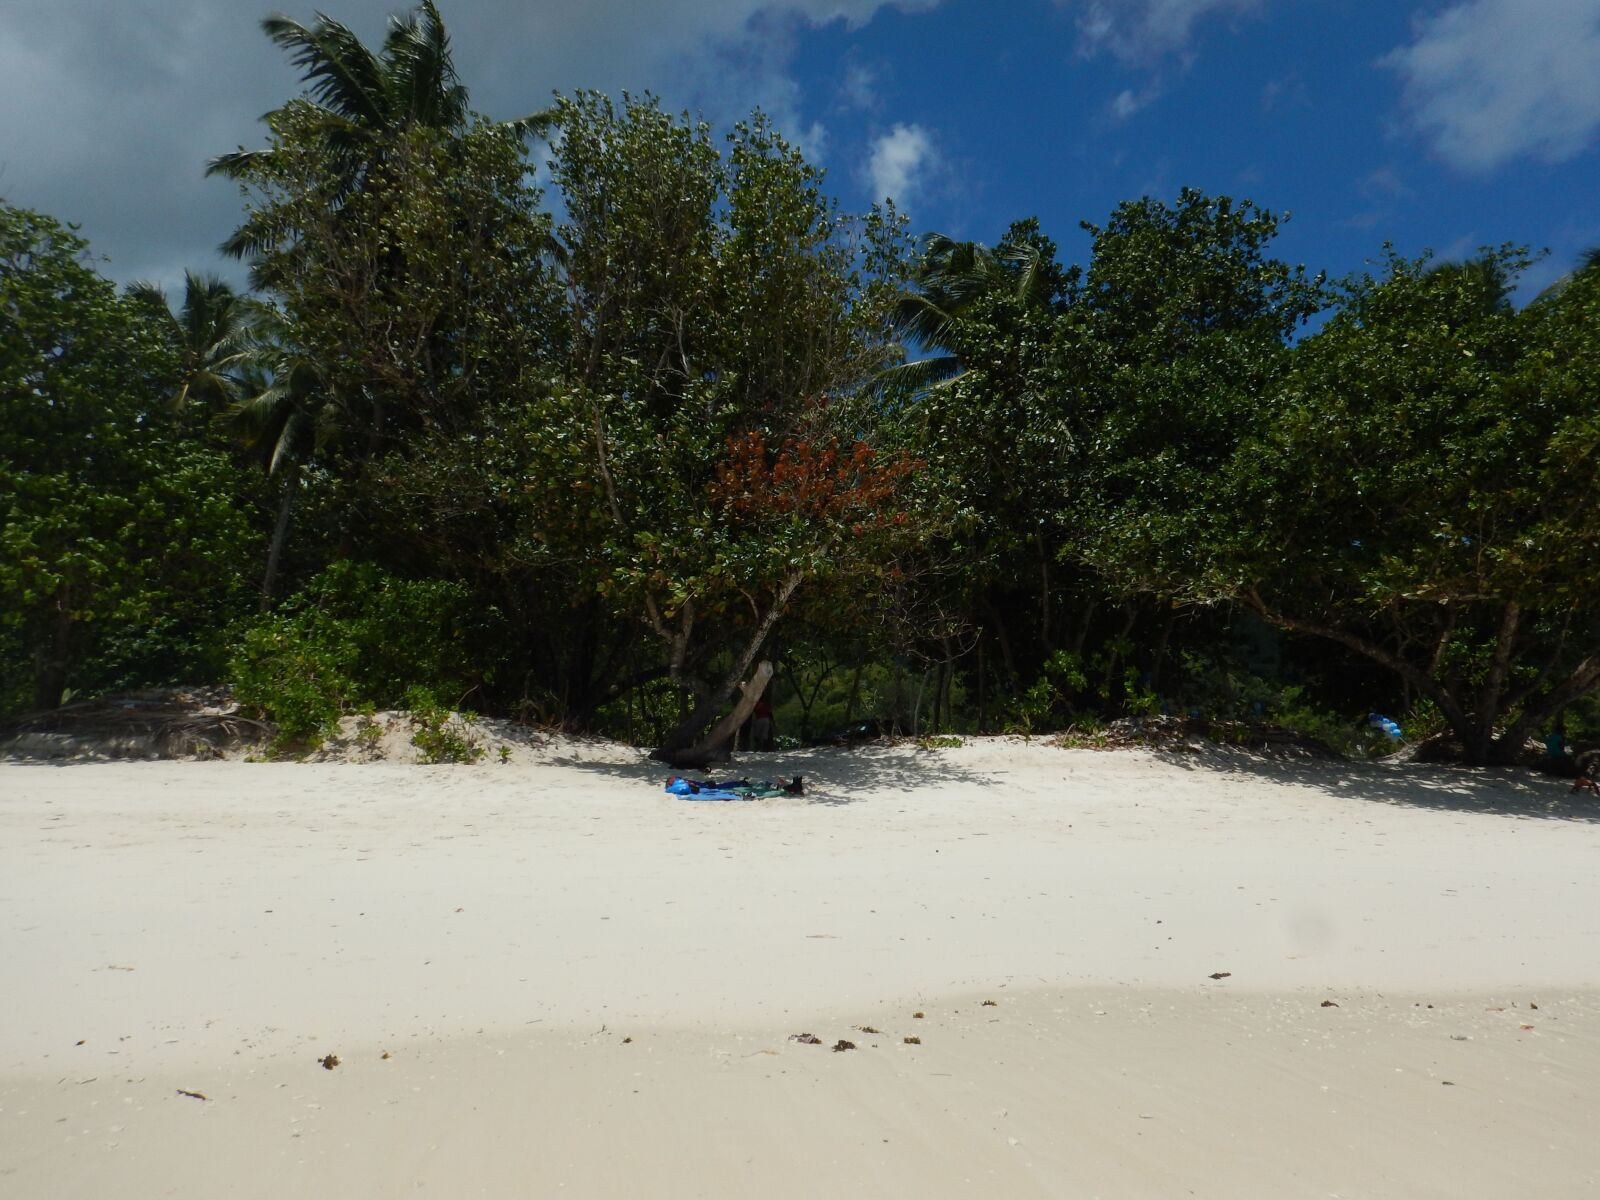 """Nikon Coolpix AW120 sample photo. """"Beach, sommer, nature"""" photography"""